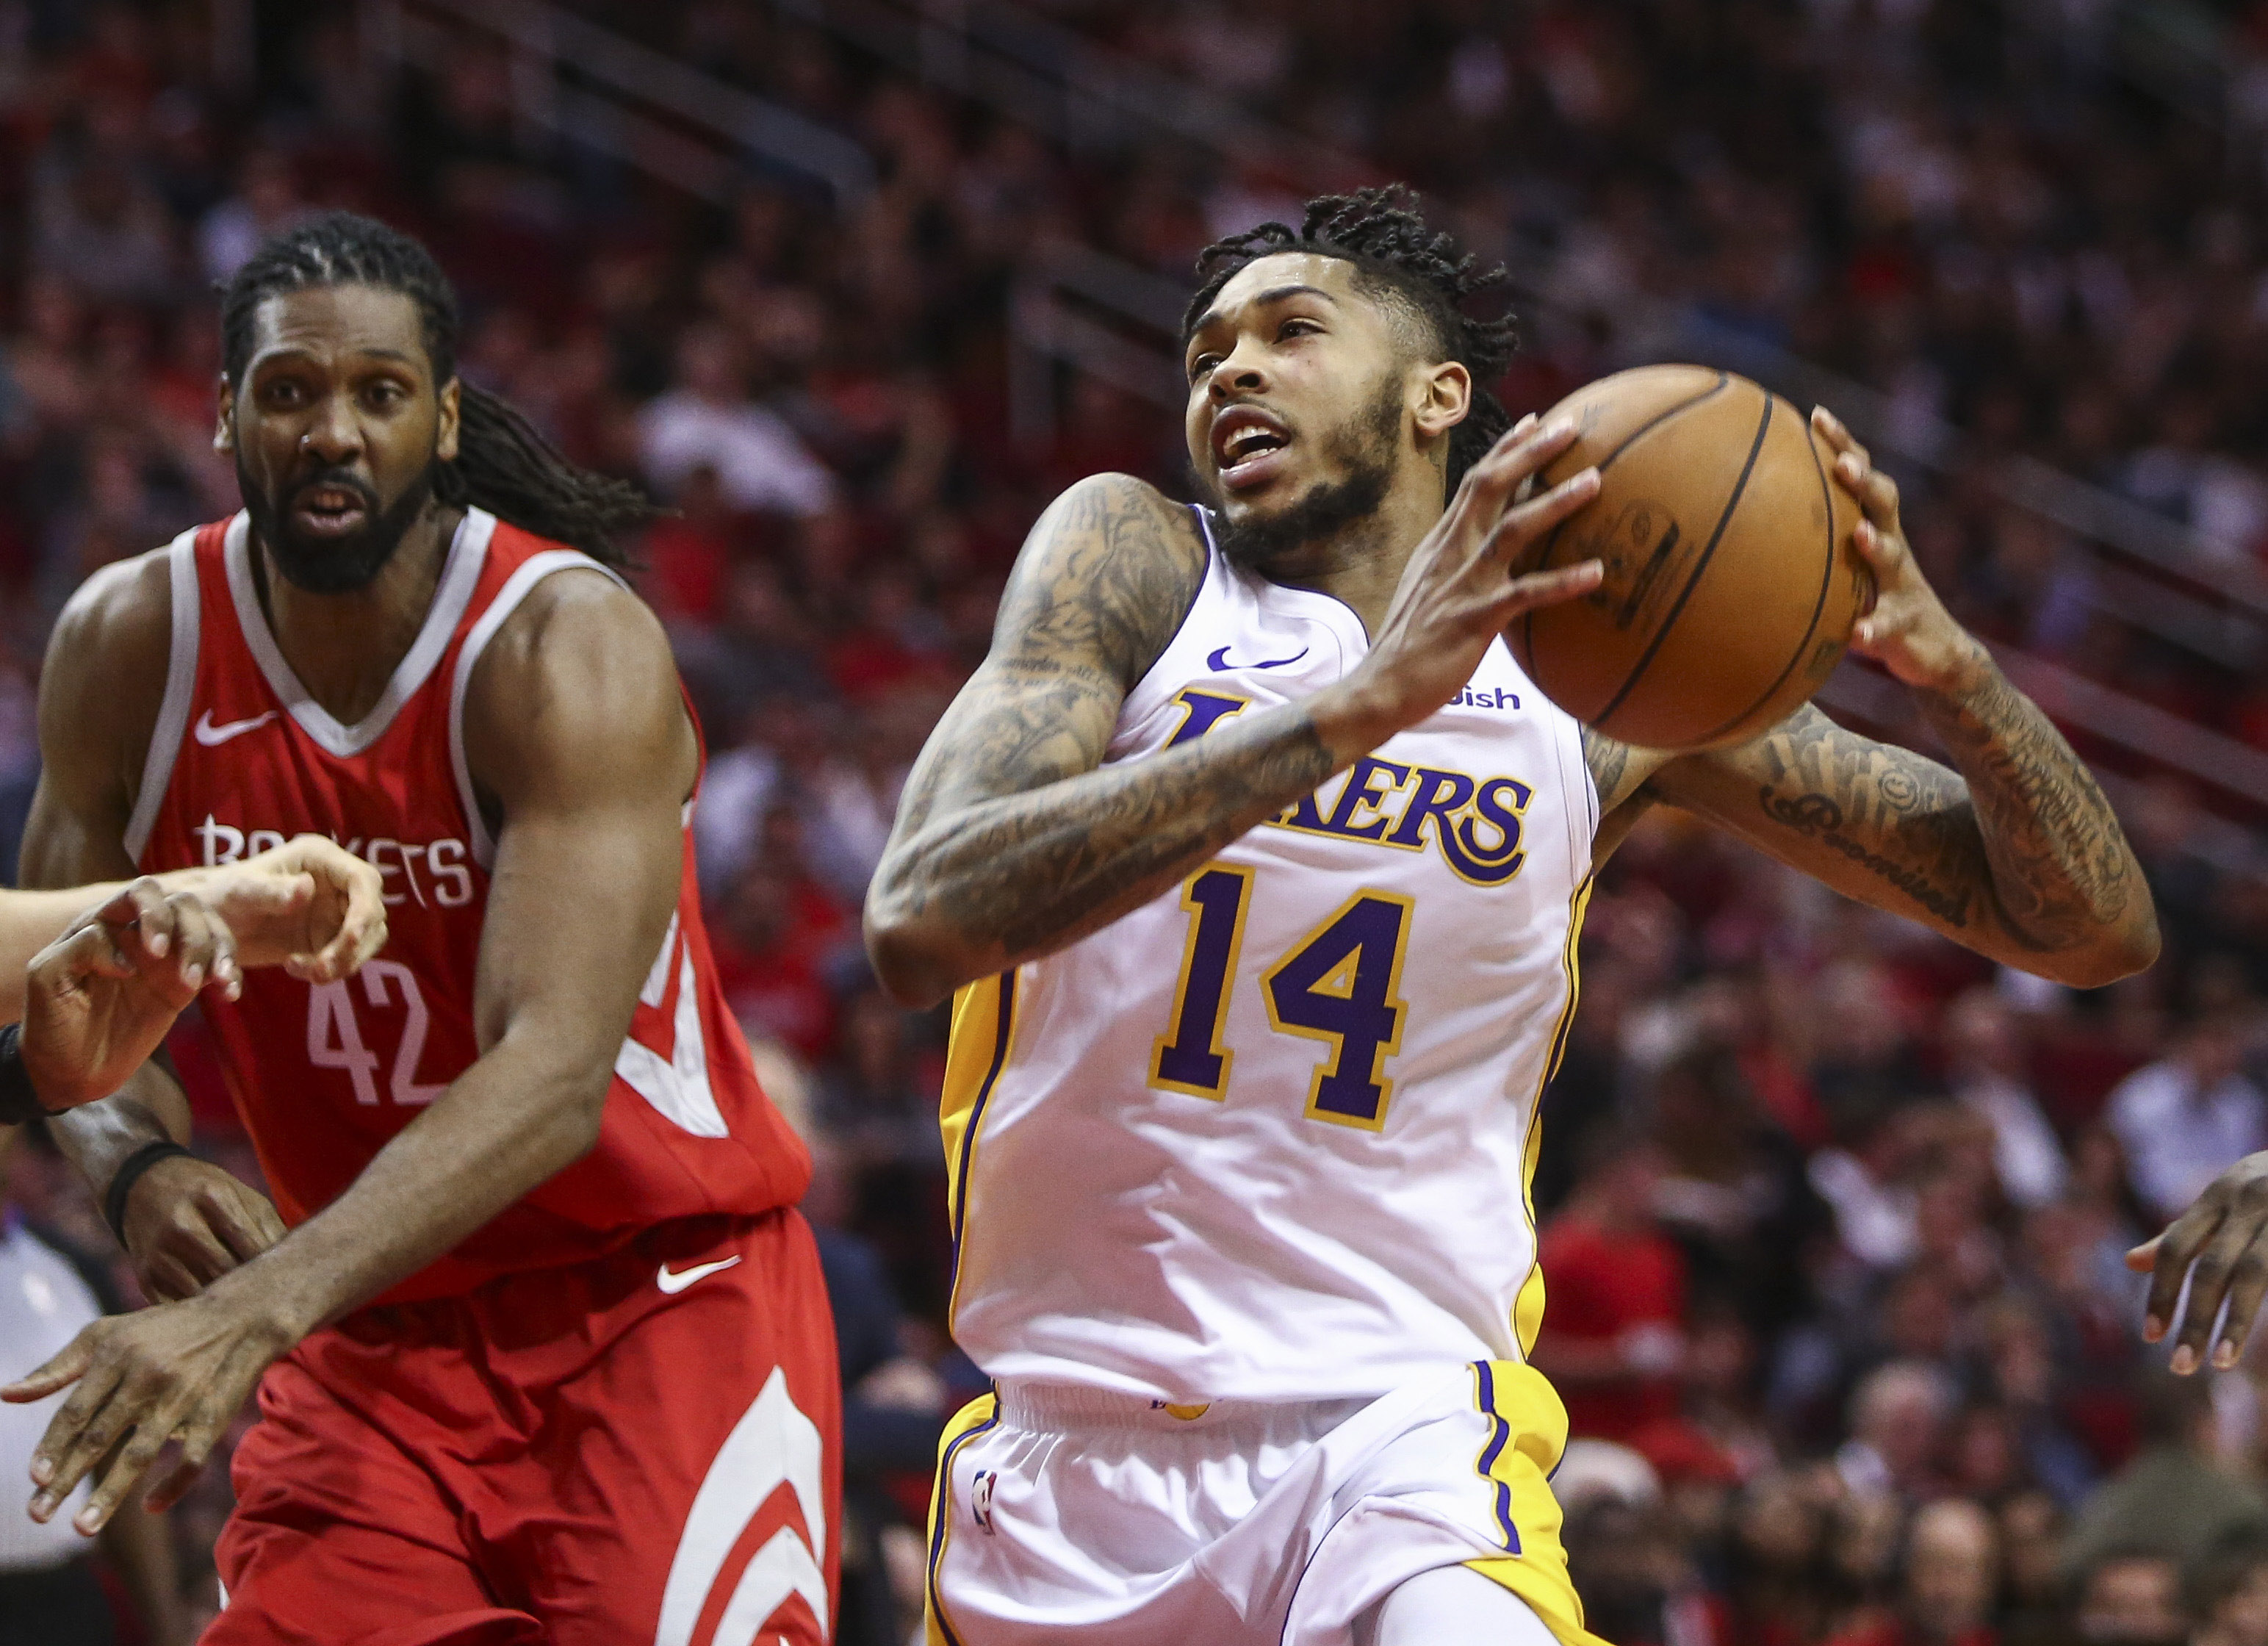 Lakers' Brandon Ingram out against Blazers with quad issues